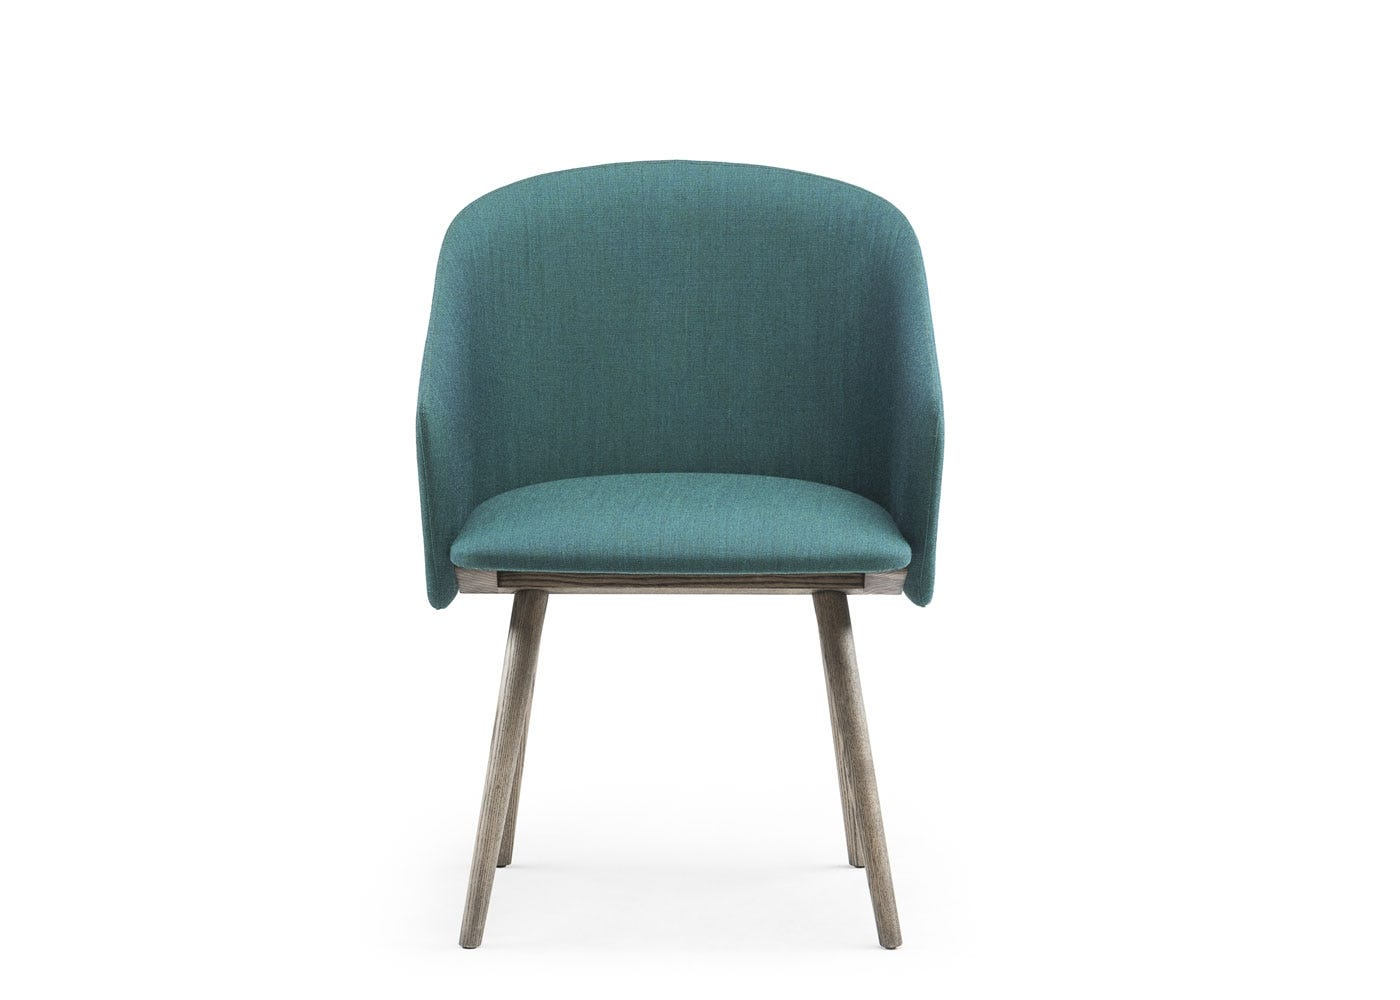 Saia dining chair upholstered in turquoise canvas - front view.